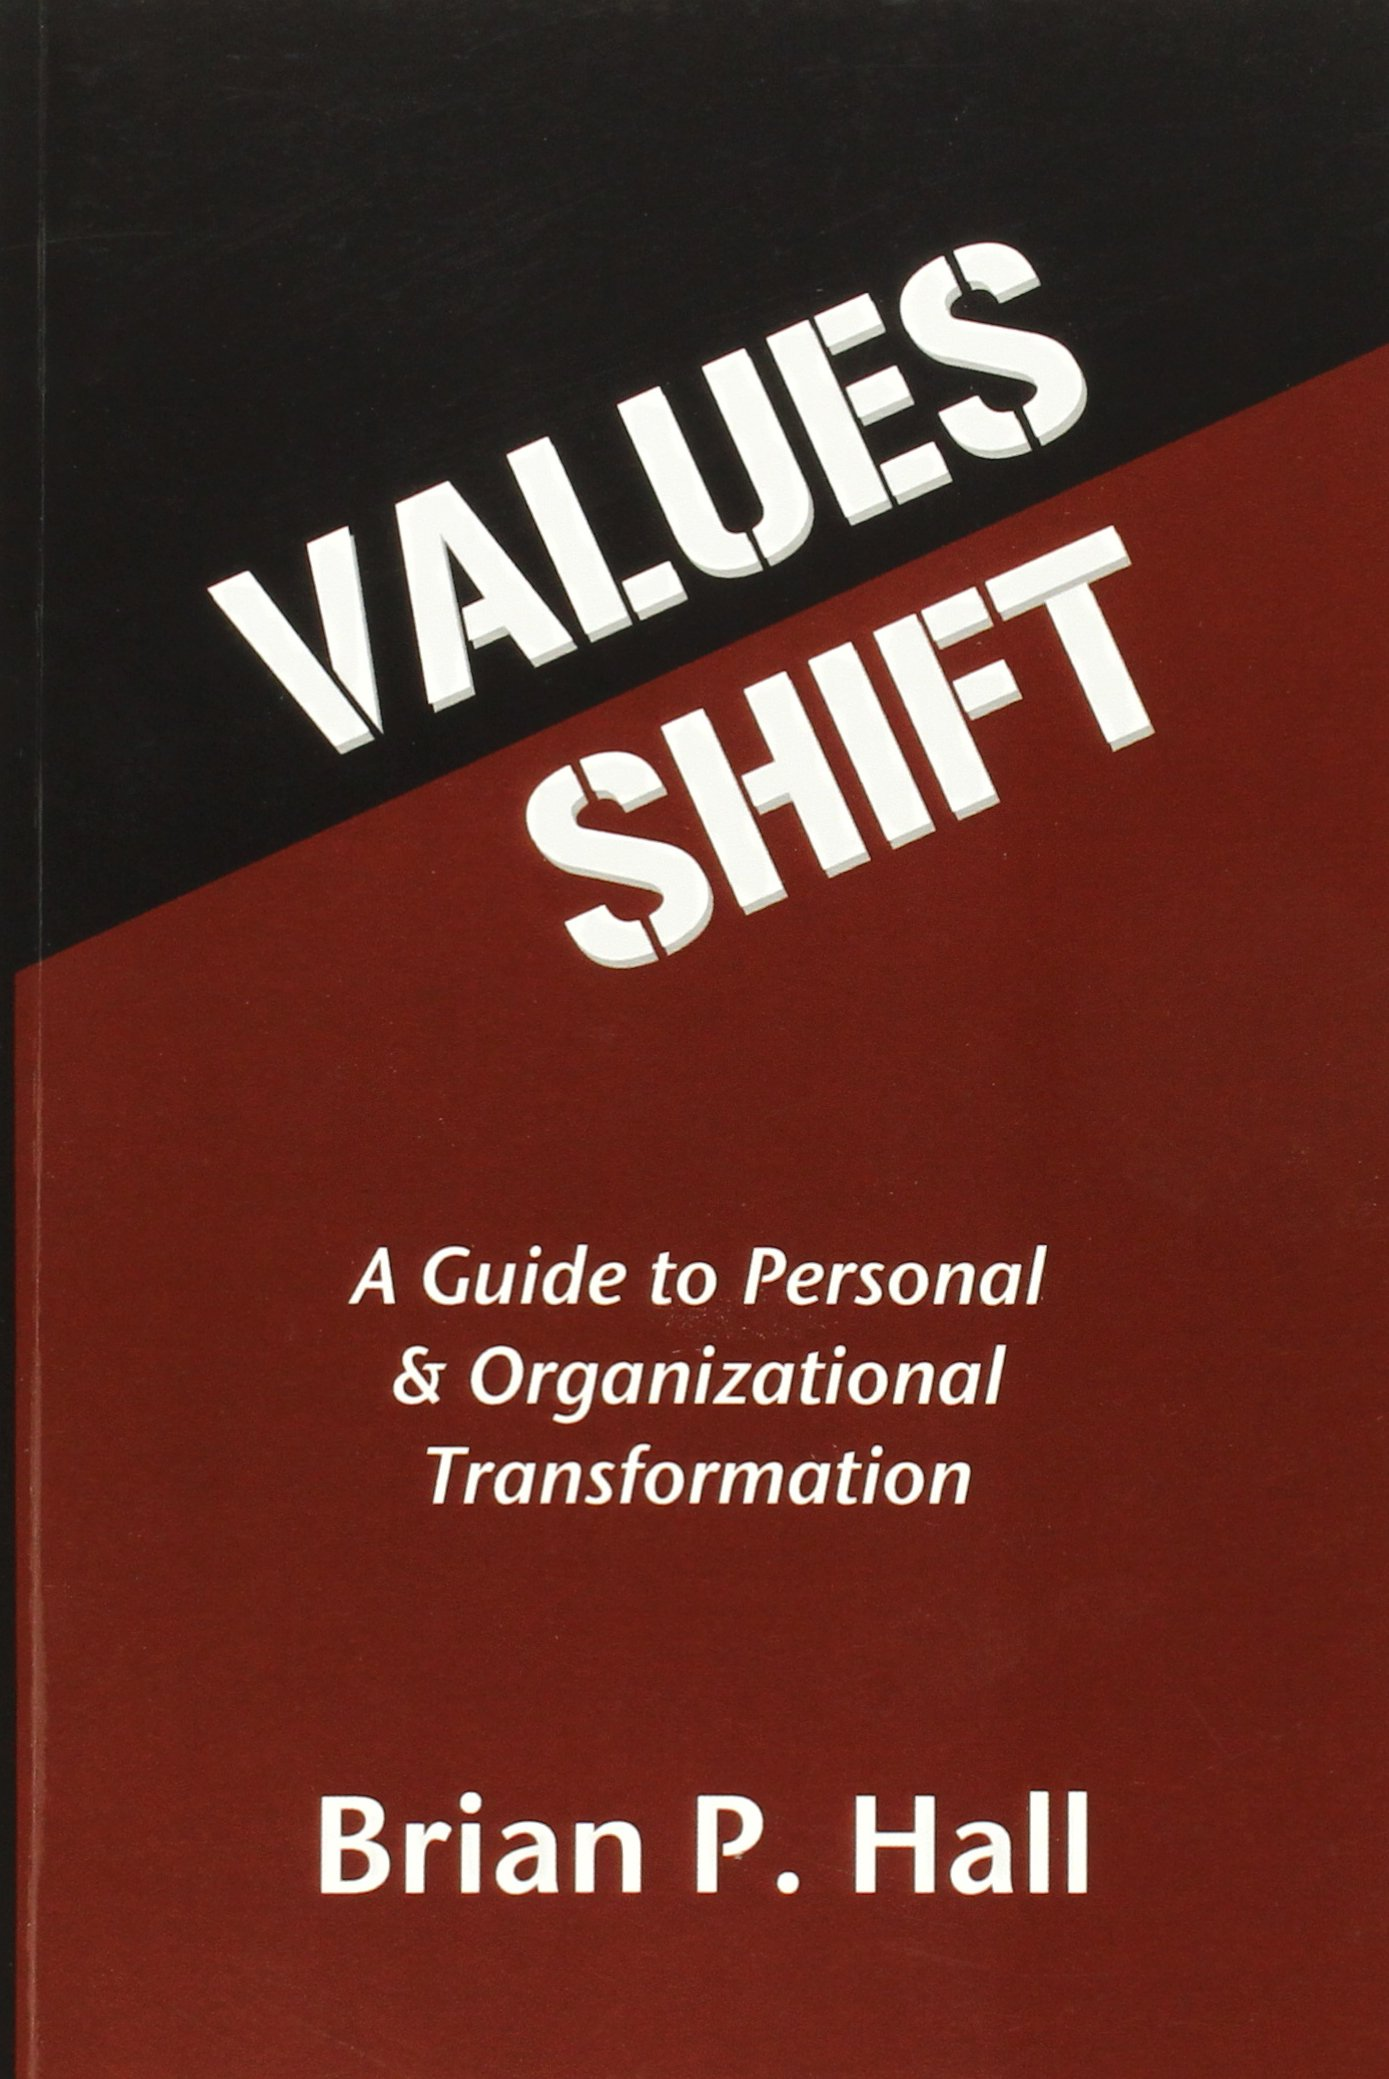 Values Shift A Guide to Personal and Organizational Transformation